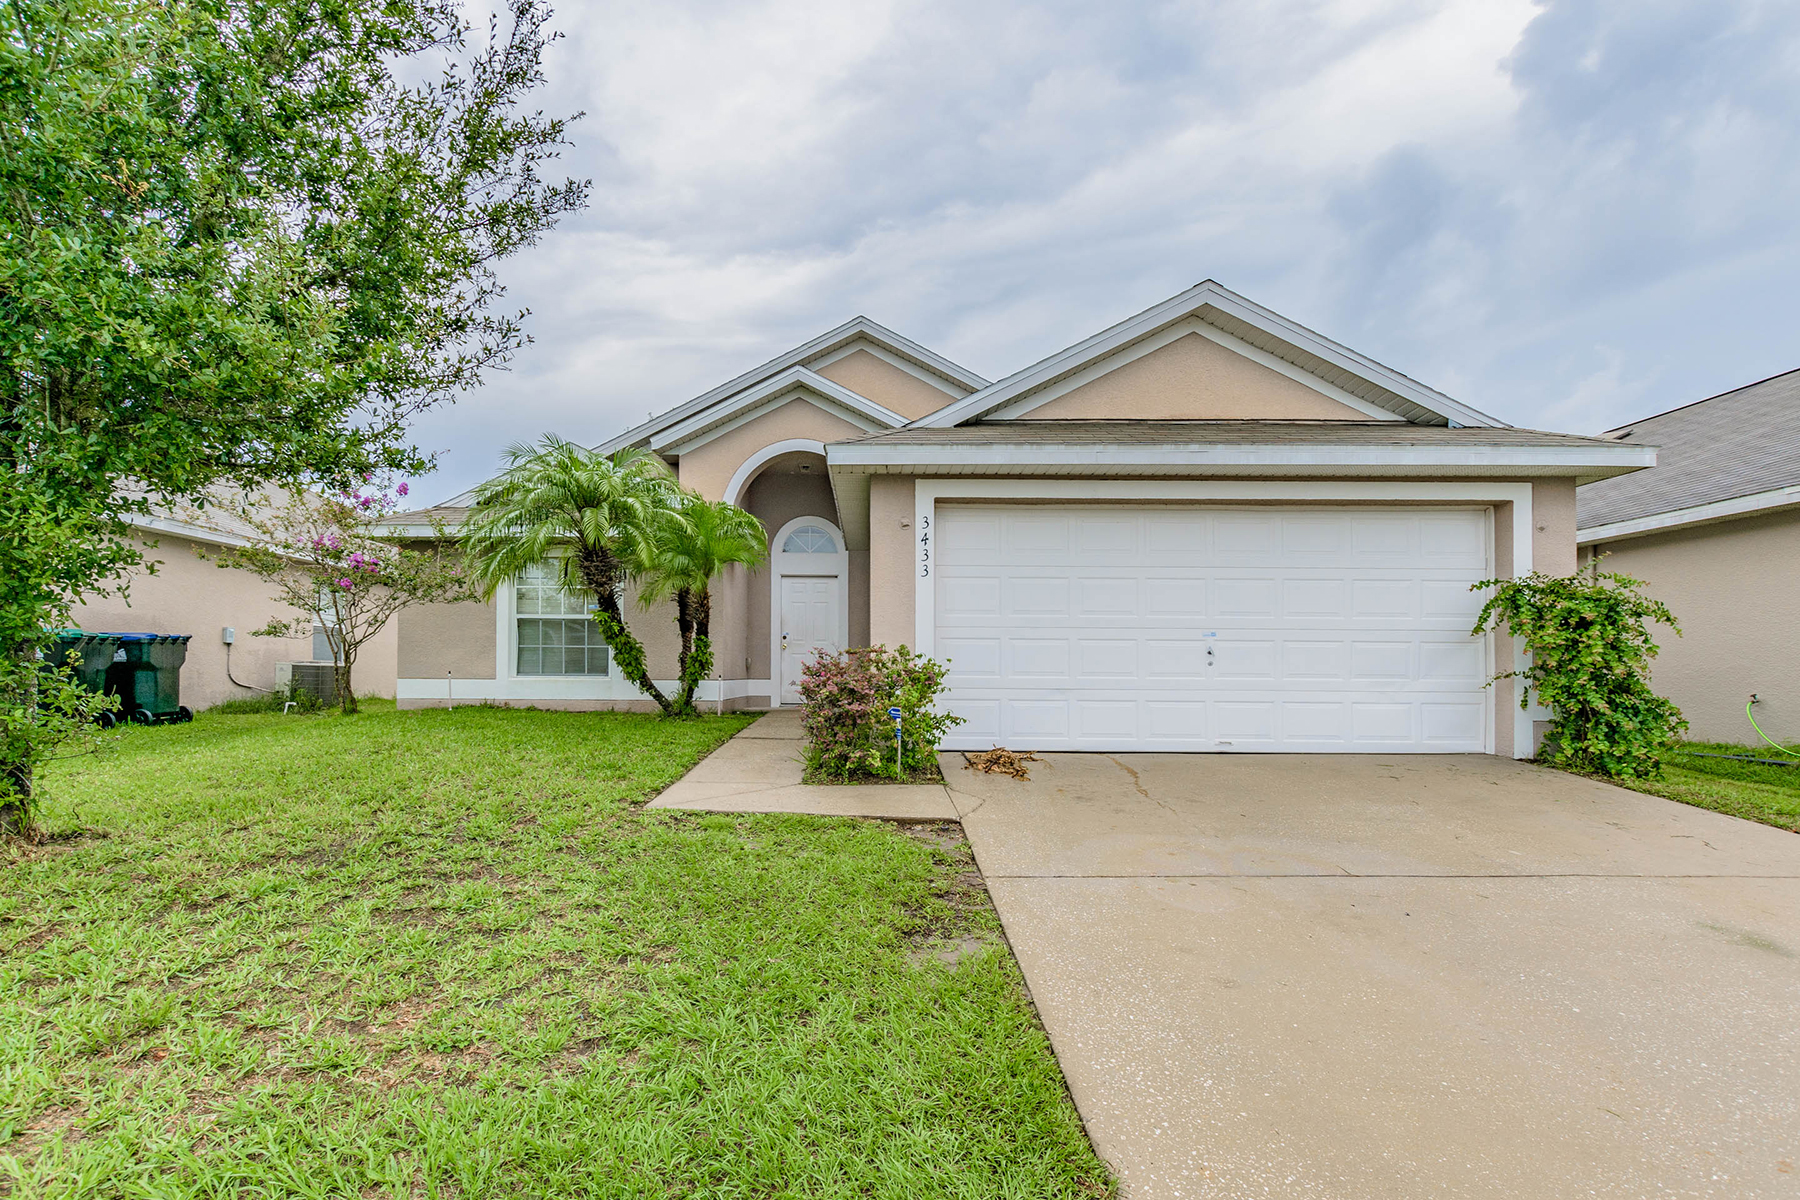 Single Family Home for Sale at ORLANDO - FLORIDA 3433 Benson Park Blvd, Orlando, Florida 32829 United States